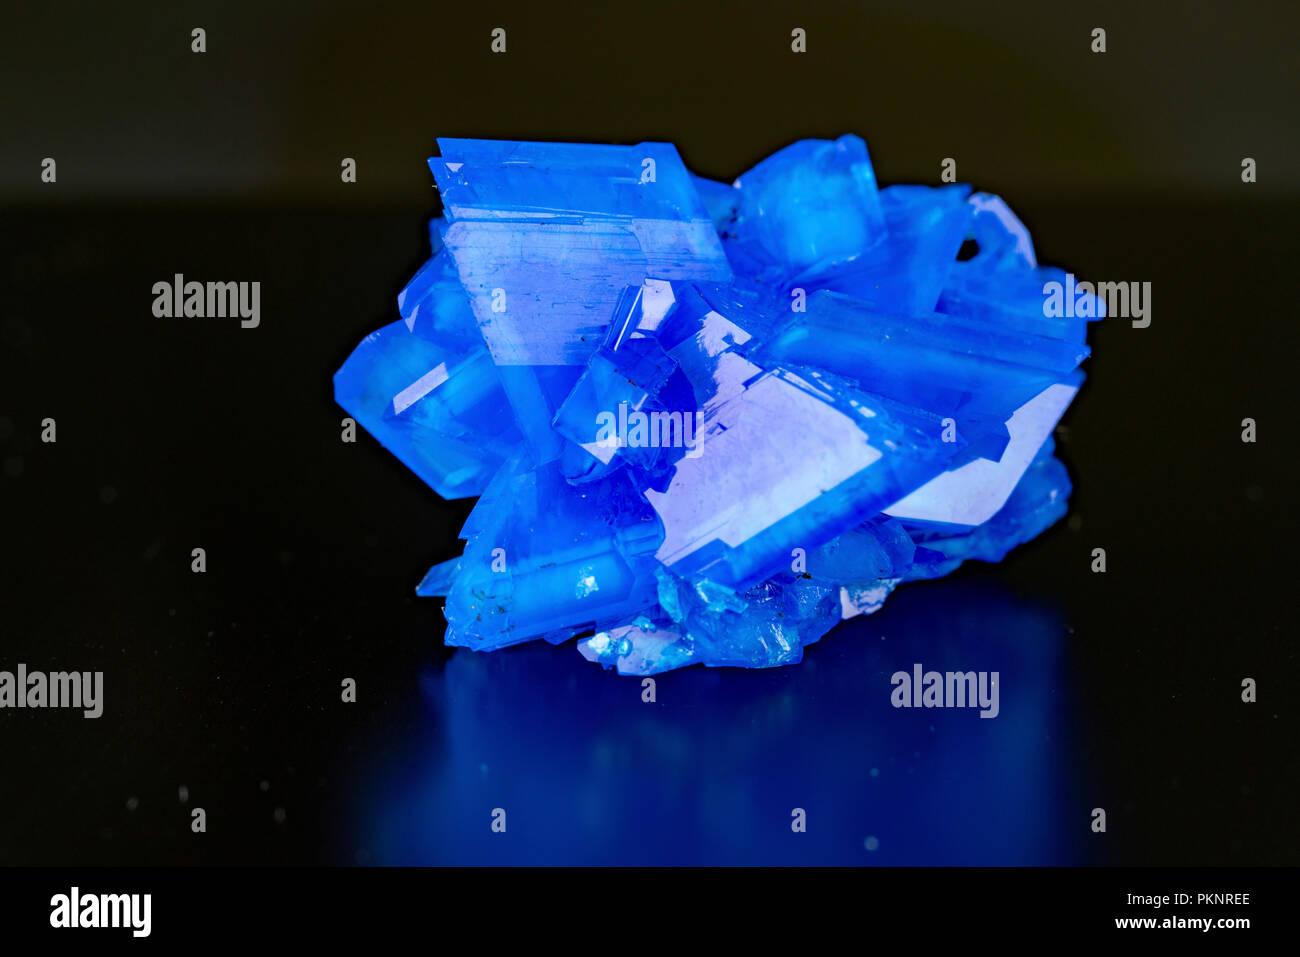 Blue mineral. - Stock Image